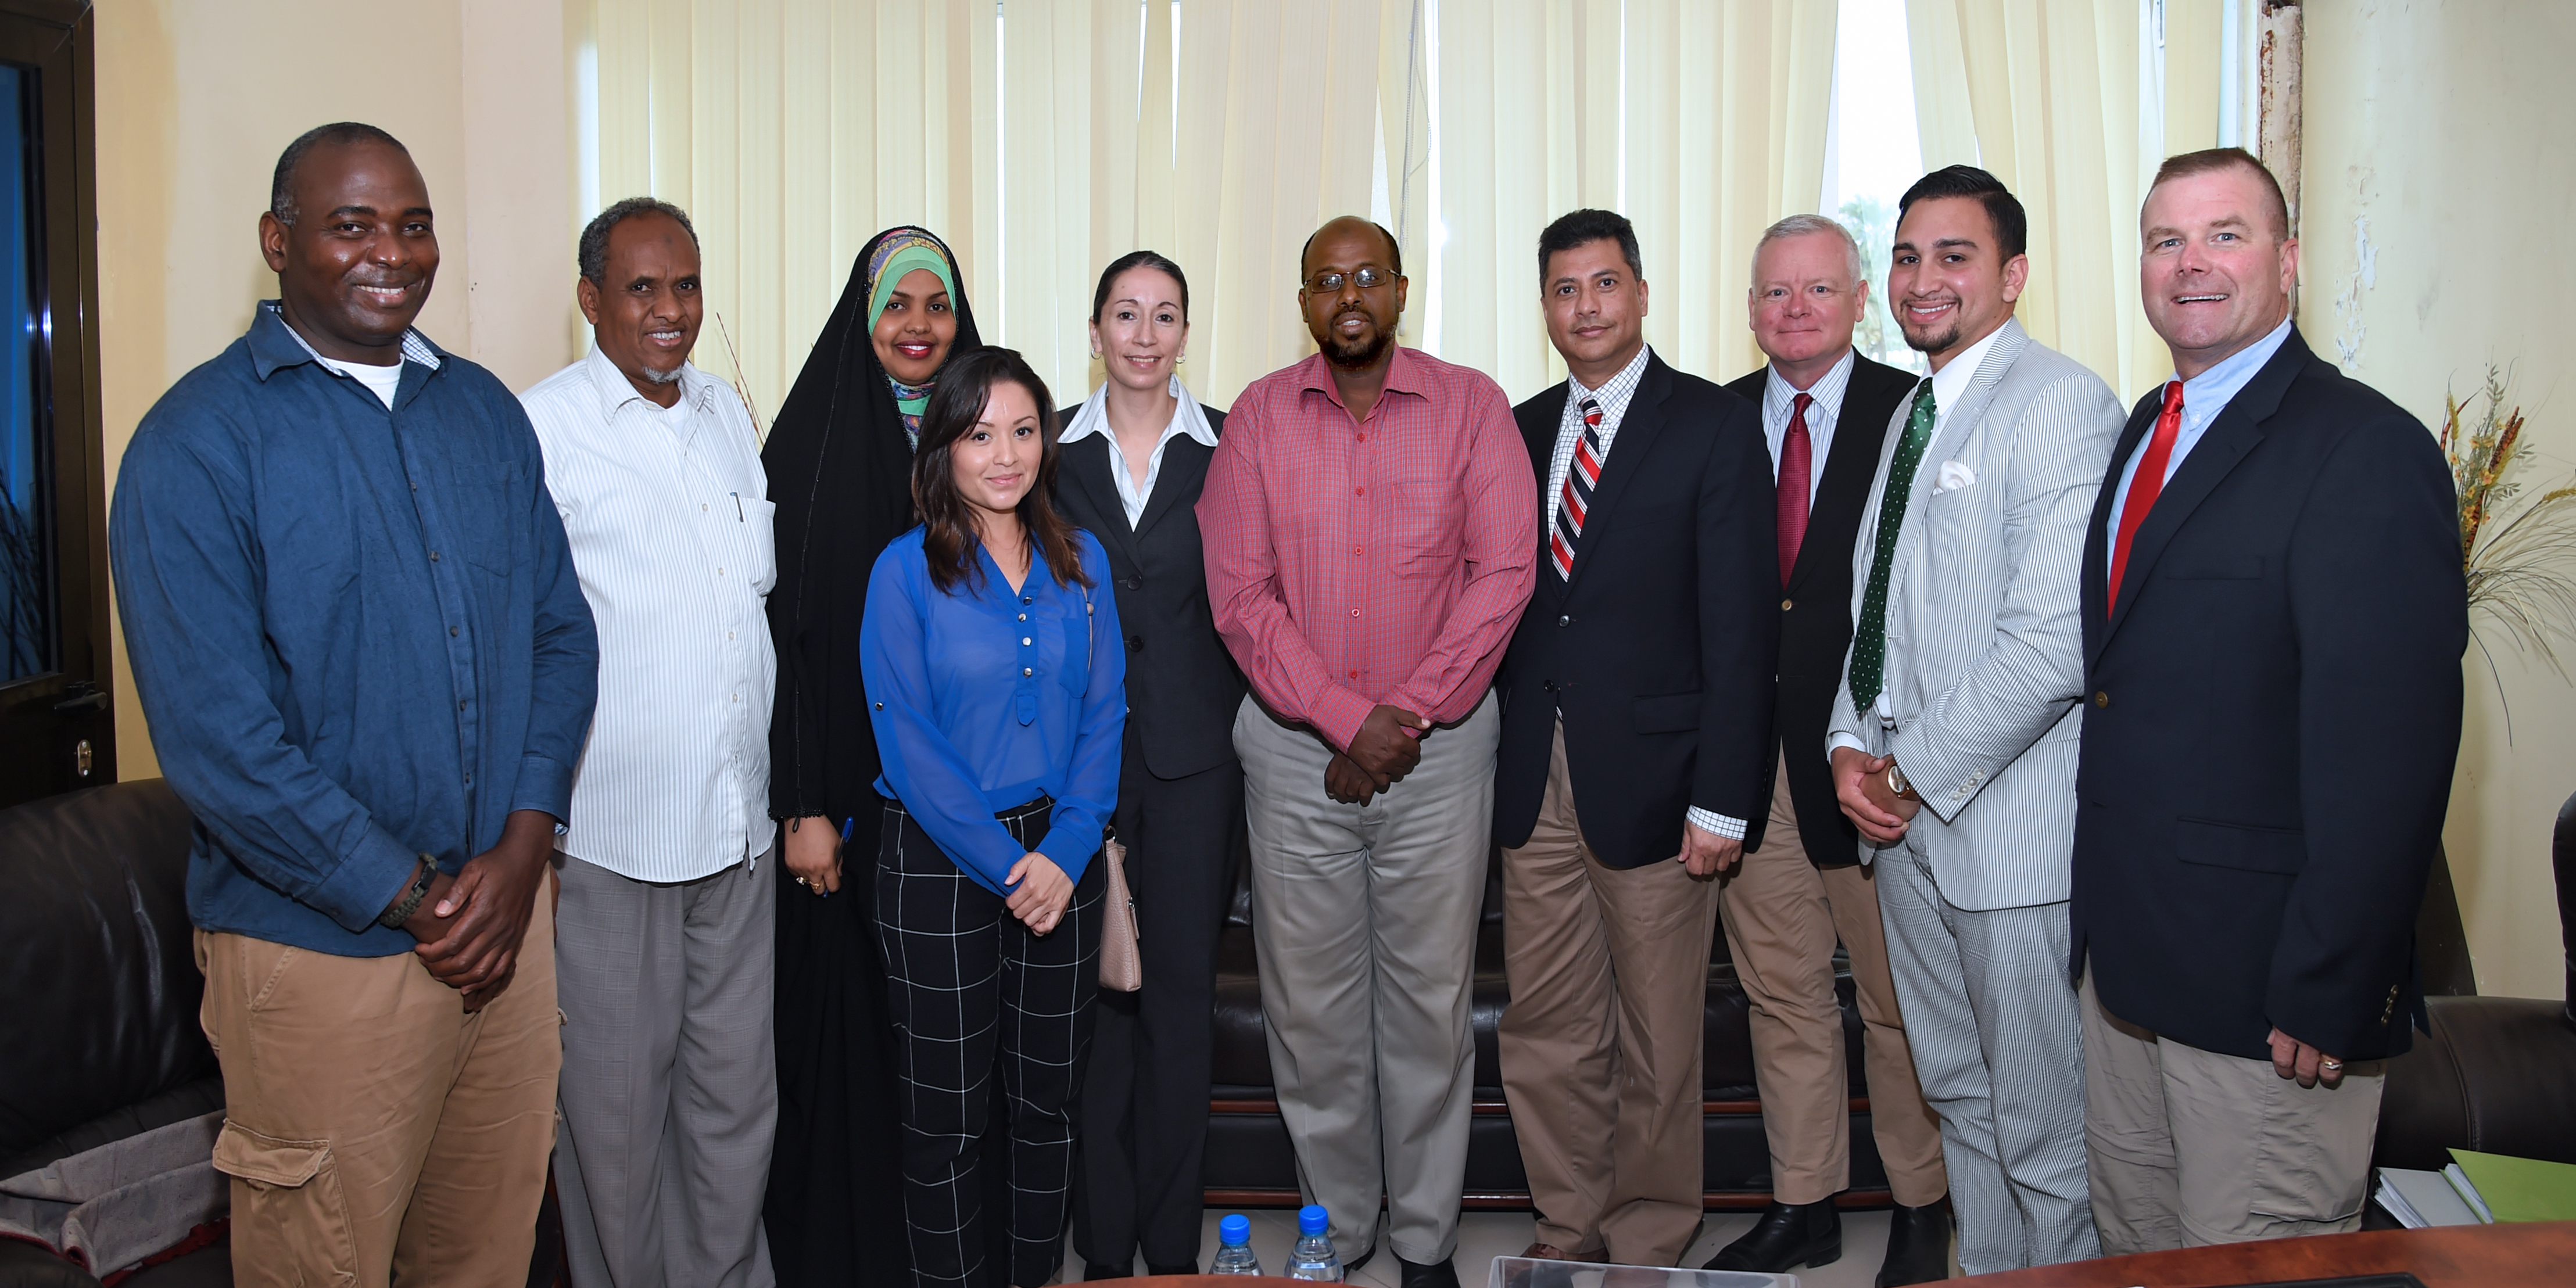 The Combined Joint Task Force-Horn of Africa Religious Affairs staff join U.S. Navy Cmdr. Abuhena Saifulislam, deputy command chaplain for U.S. Africa Command, and U.S. Army Sgt. Maj. Chantel Sena-Diaz, senior enlisted leader of religious affairs for USAFRICOM to meet with members of the Ministry of Islamic Affairs in downtown Djibouti Jan. 30, 2017. The meeting was part of a week-long temporary duty assignment to Djibouti for exercise Cutlass Express 2017, during which Saifulislam and Sena-Diaz were able to engage with key Muslim leaders and local practitioners of the Islamic faith. (U.S. Air National Guard photo by Master Sgt. Paul Gorman)